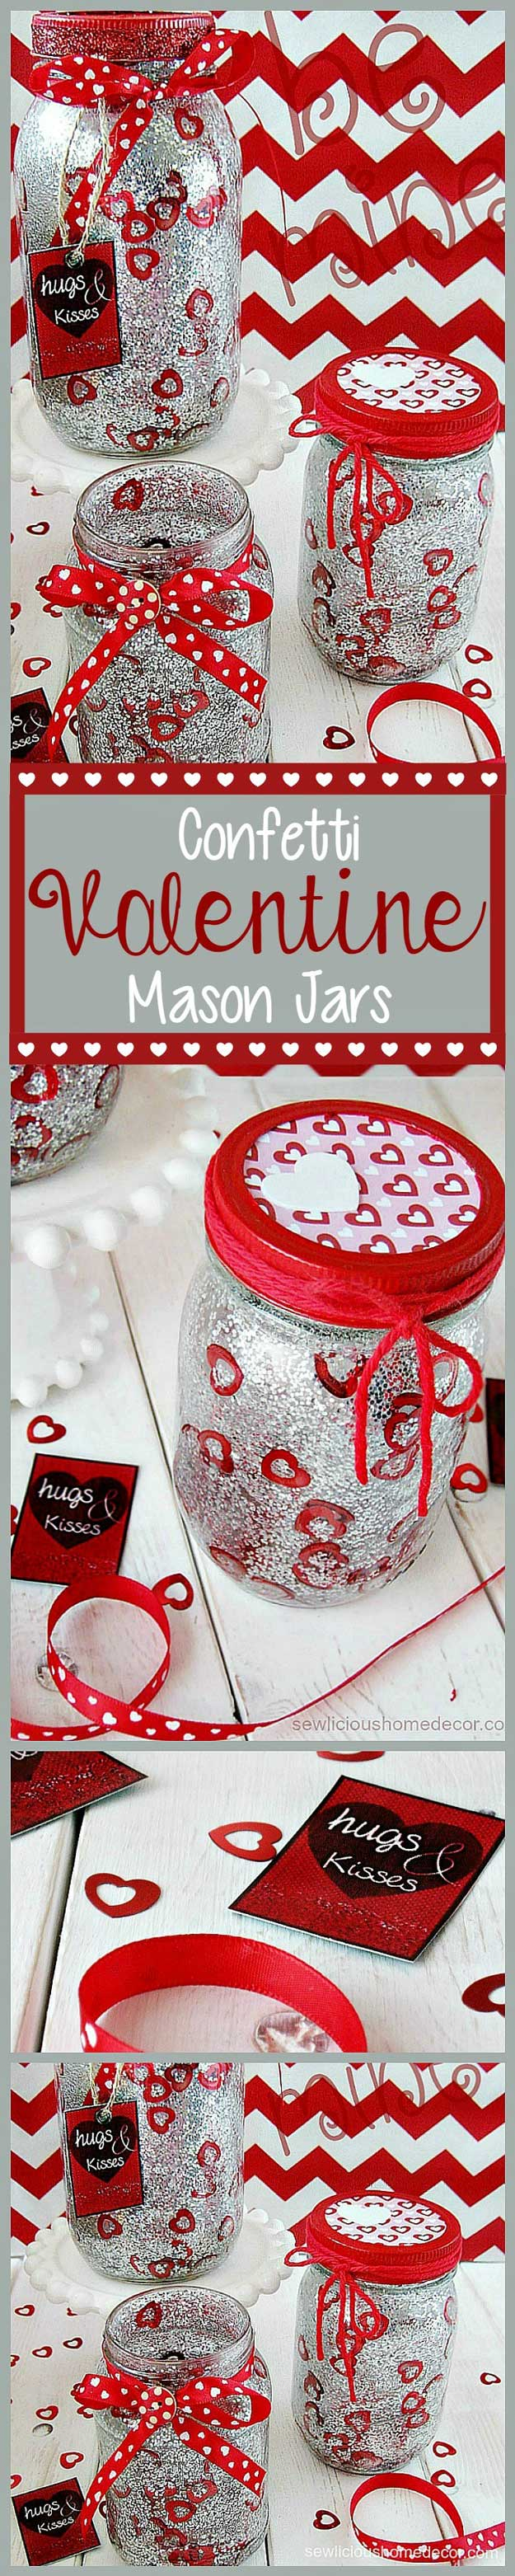 Mason Jar Valentine Gifts and Crafts | DIY Ideas for Valentines Day for Cute Gift Giving and Decor | Red Valentine Jars with Glitter and Confetti | #valentines